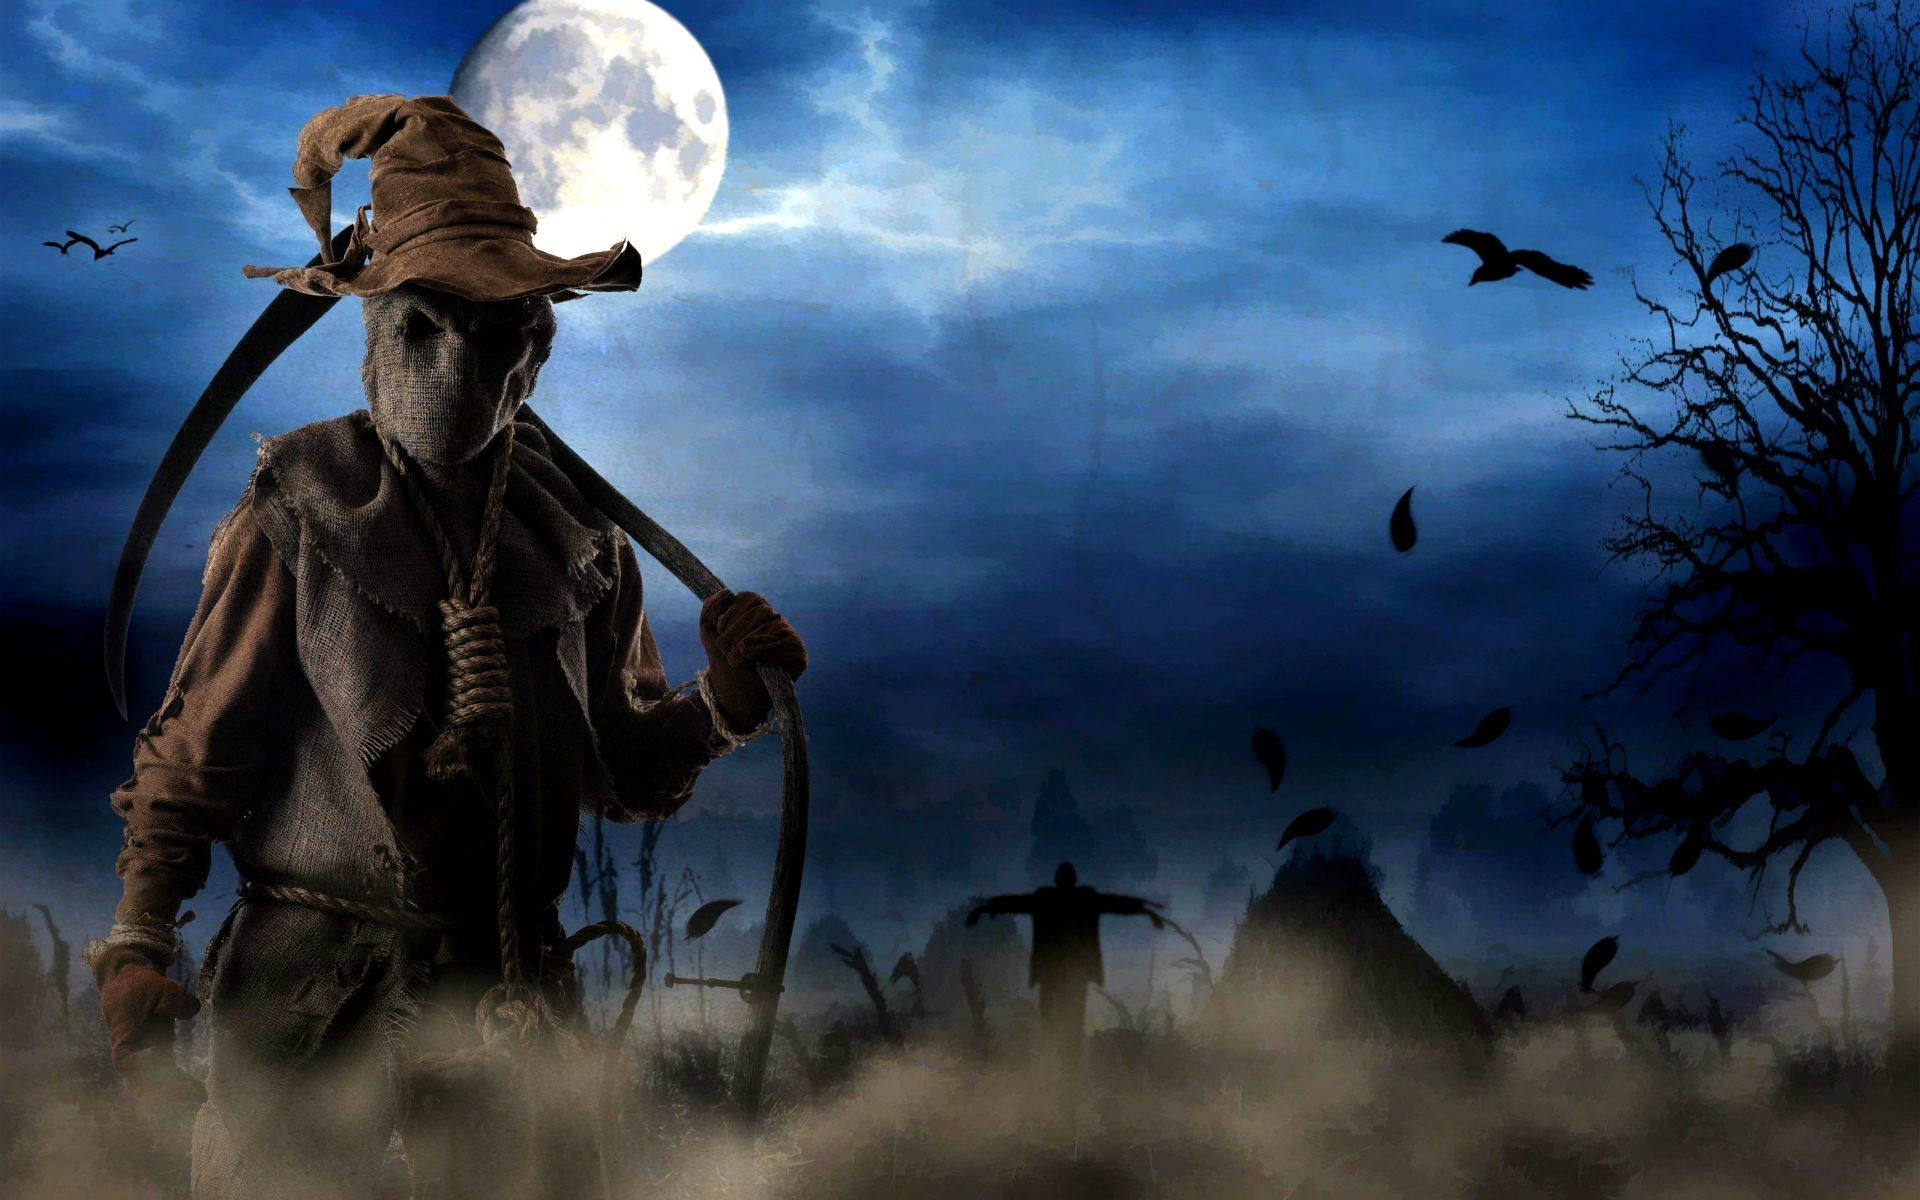 Halloween Backgrounds for Pictures 63 images 1920x1200